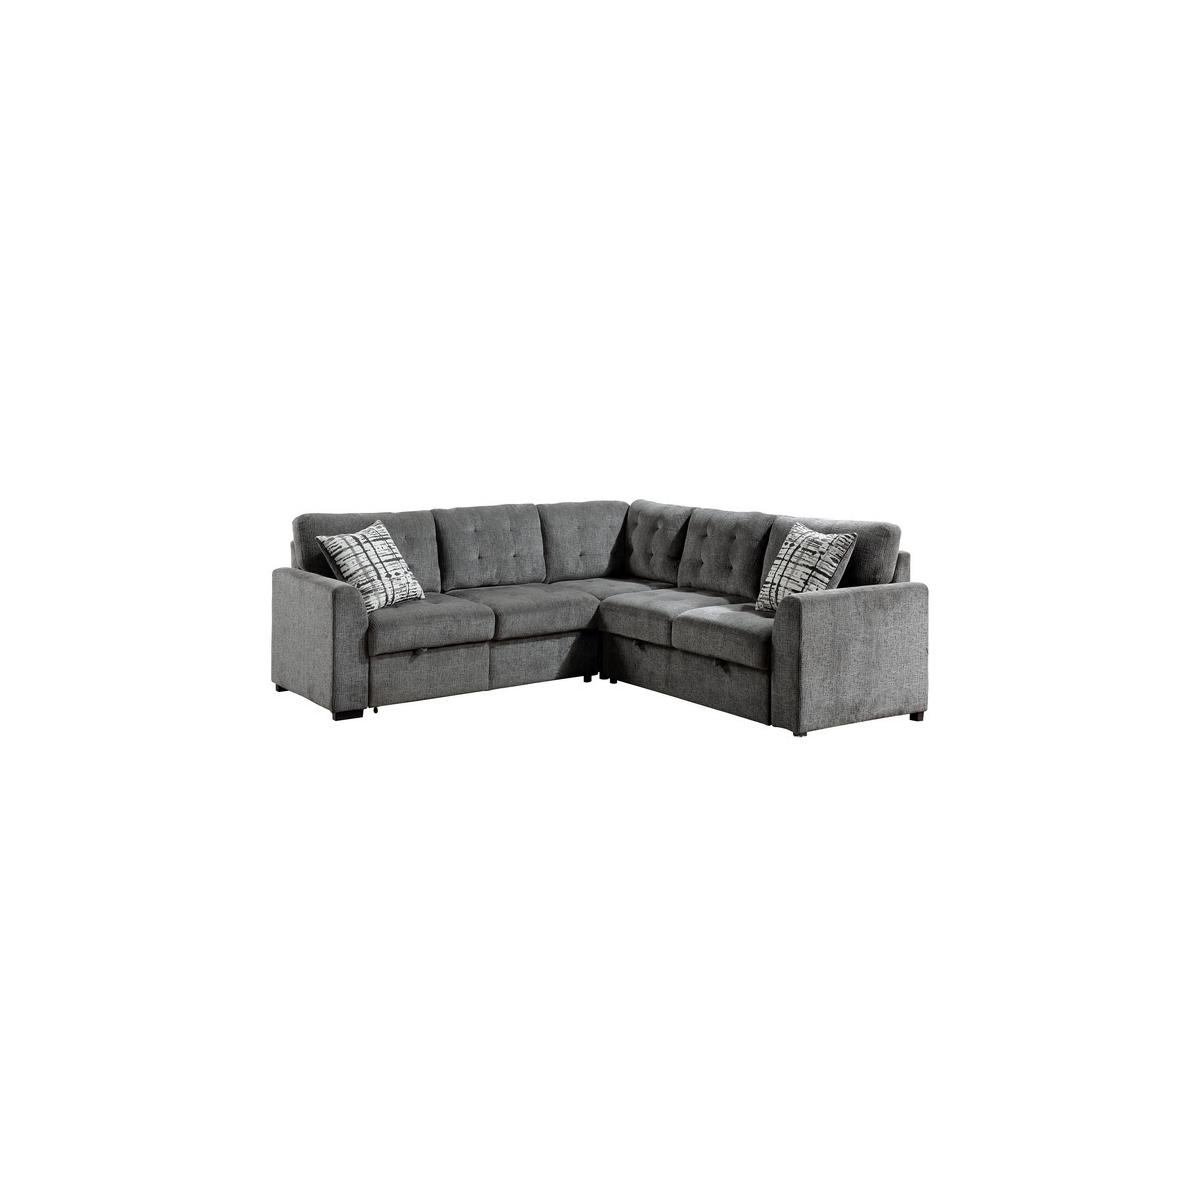 3-Piece Sectional with Pull-out Bed and Pull-out Ottoman